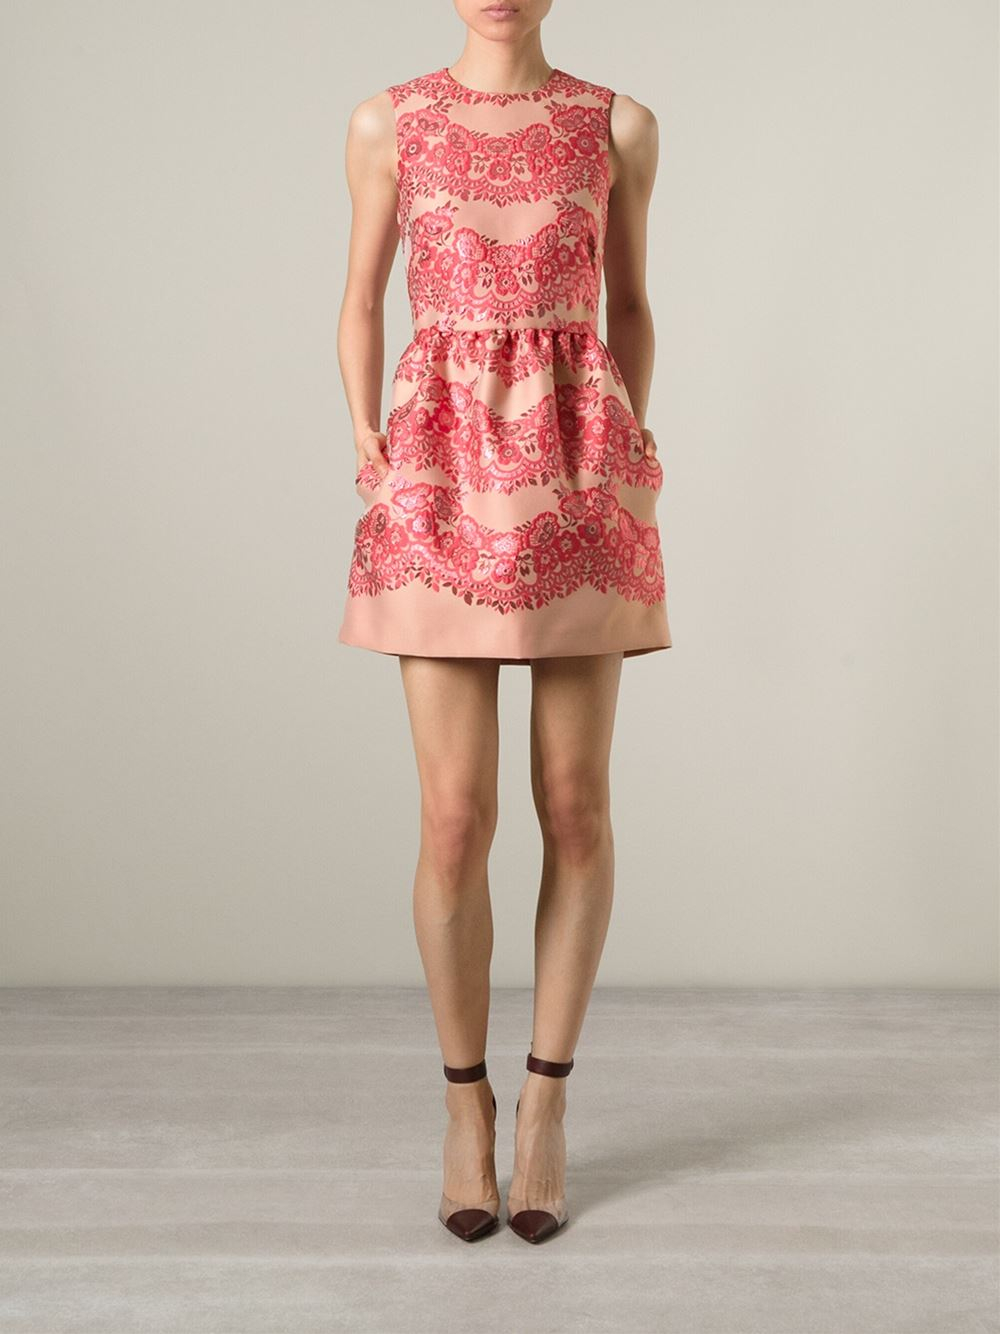 3c0afff7075 RED Valentino Floral A-Line Dress in Pink - Lyst